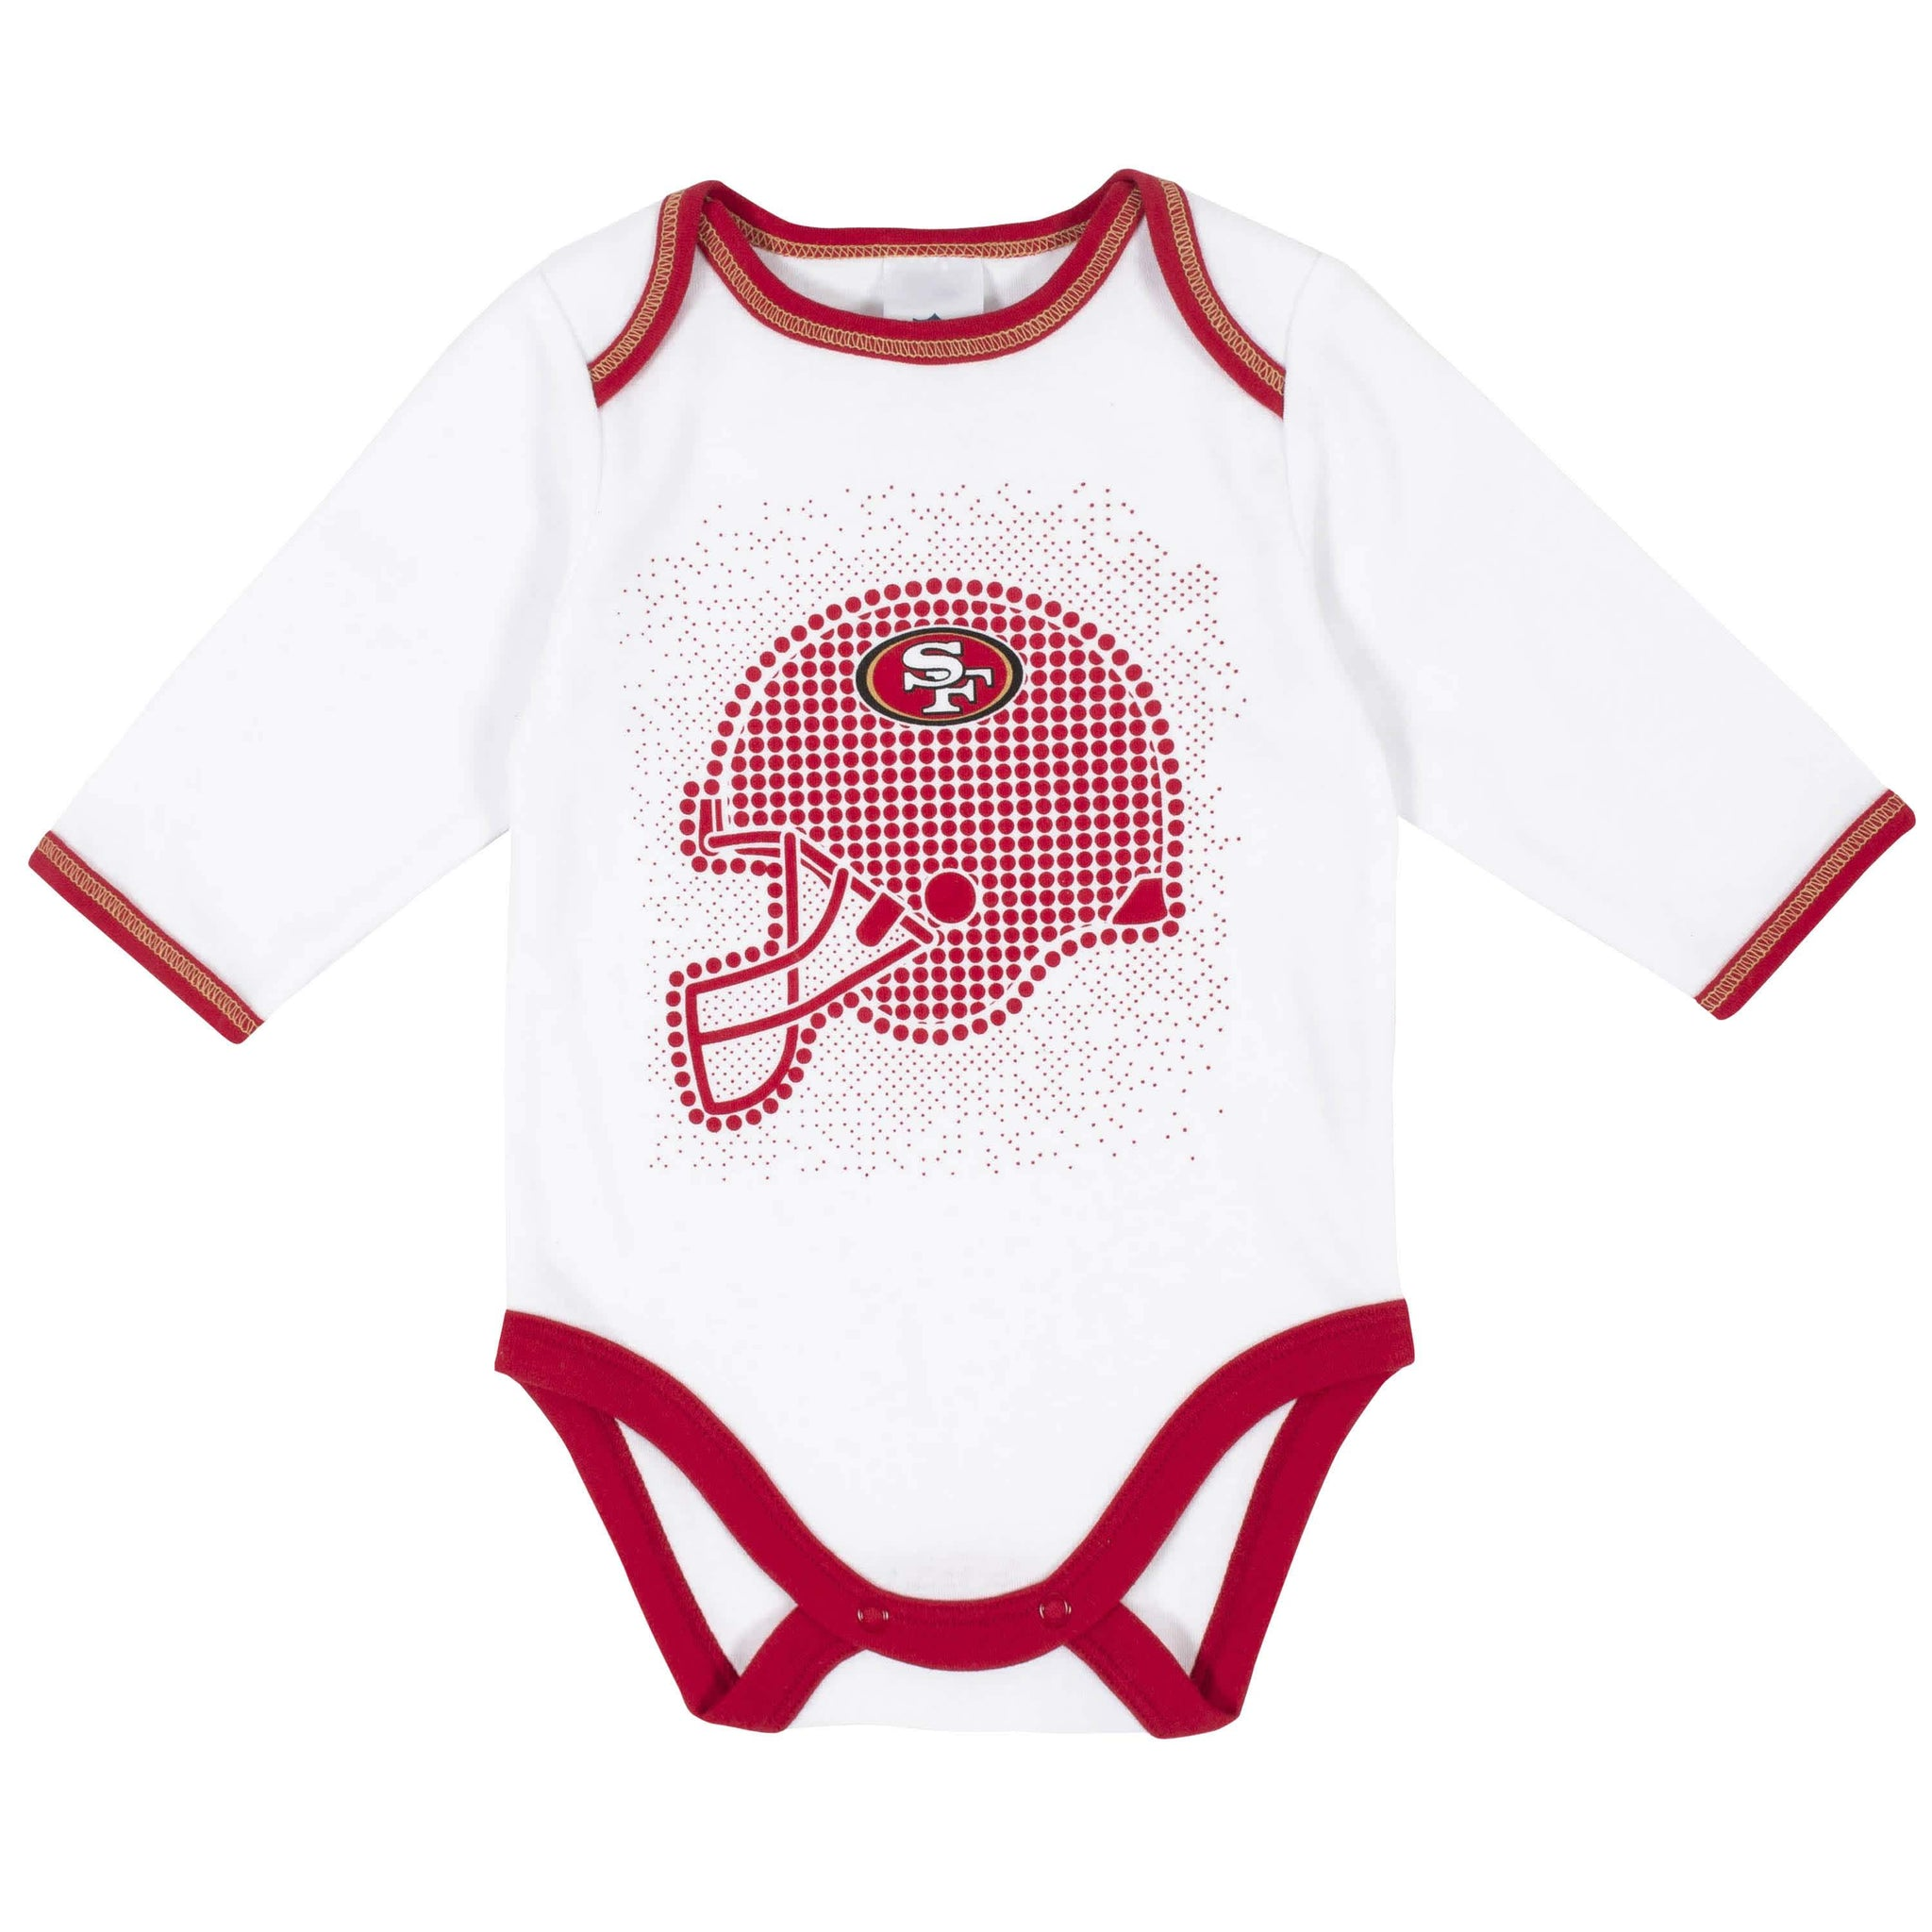 San Francisco 49ers 3-Piece Baby Boys Bodysuit, Pant, and Cap Set-Gerber Childrenswear